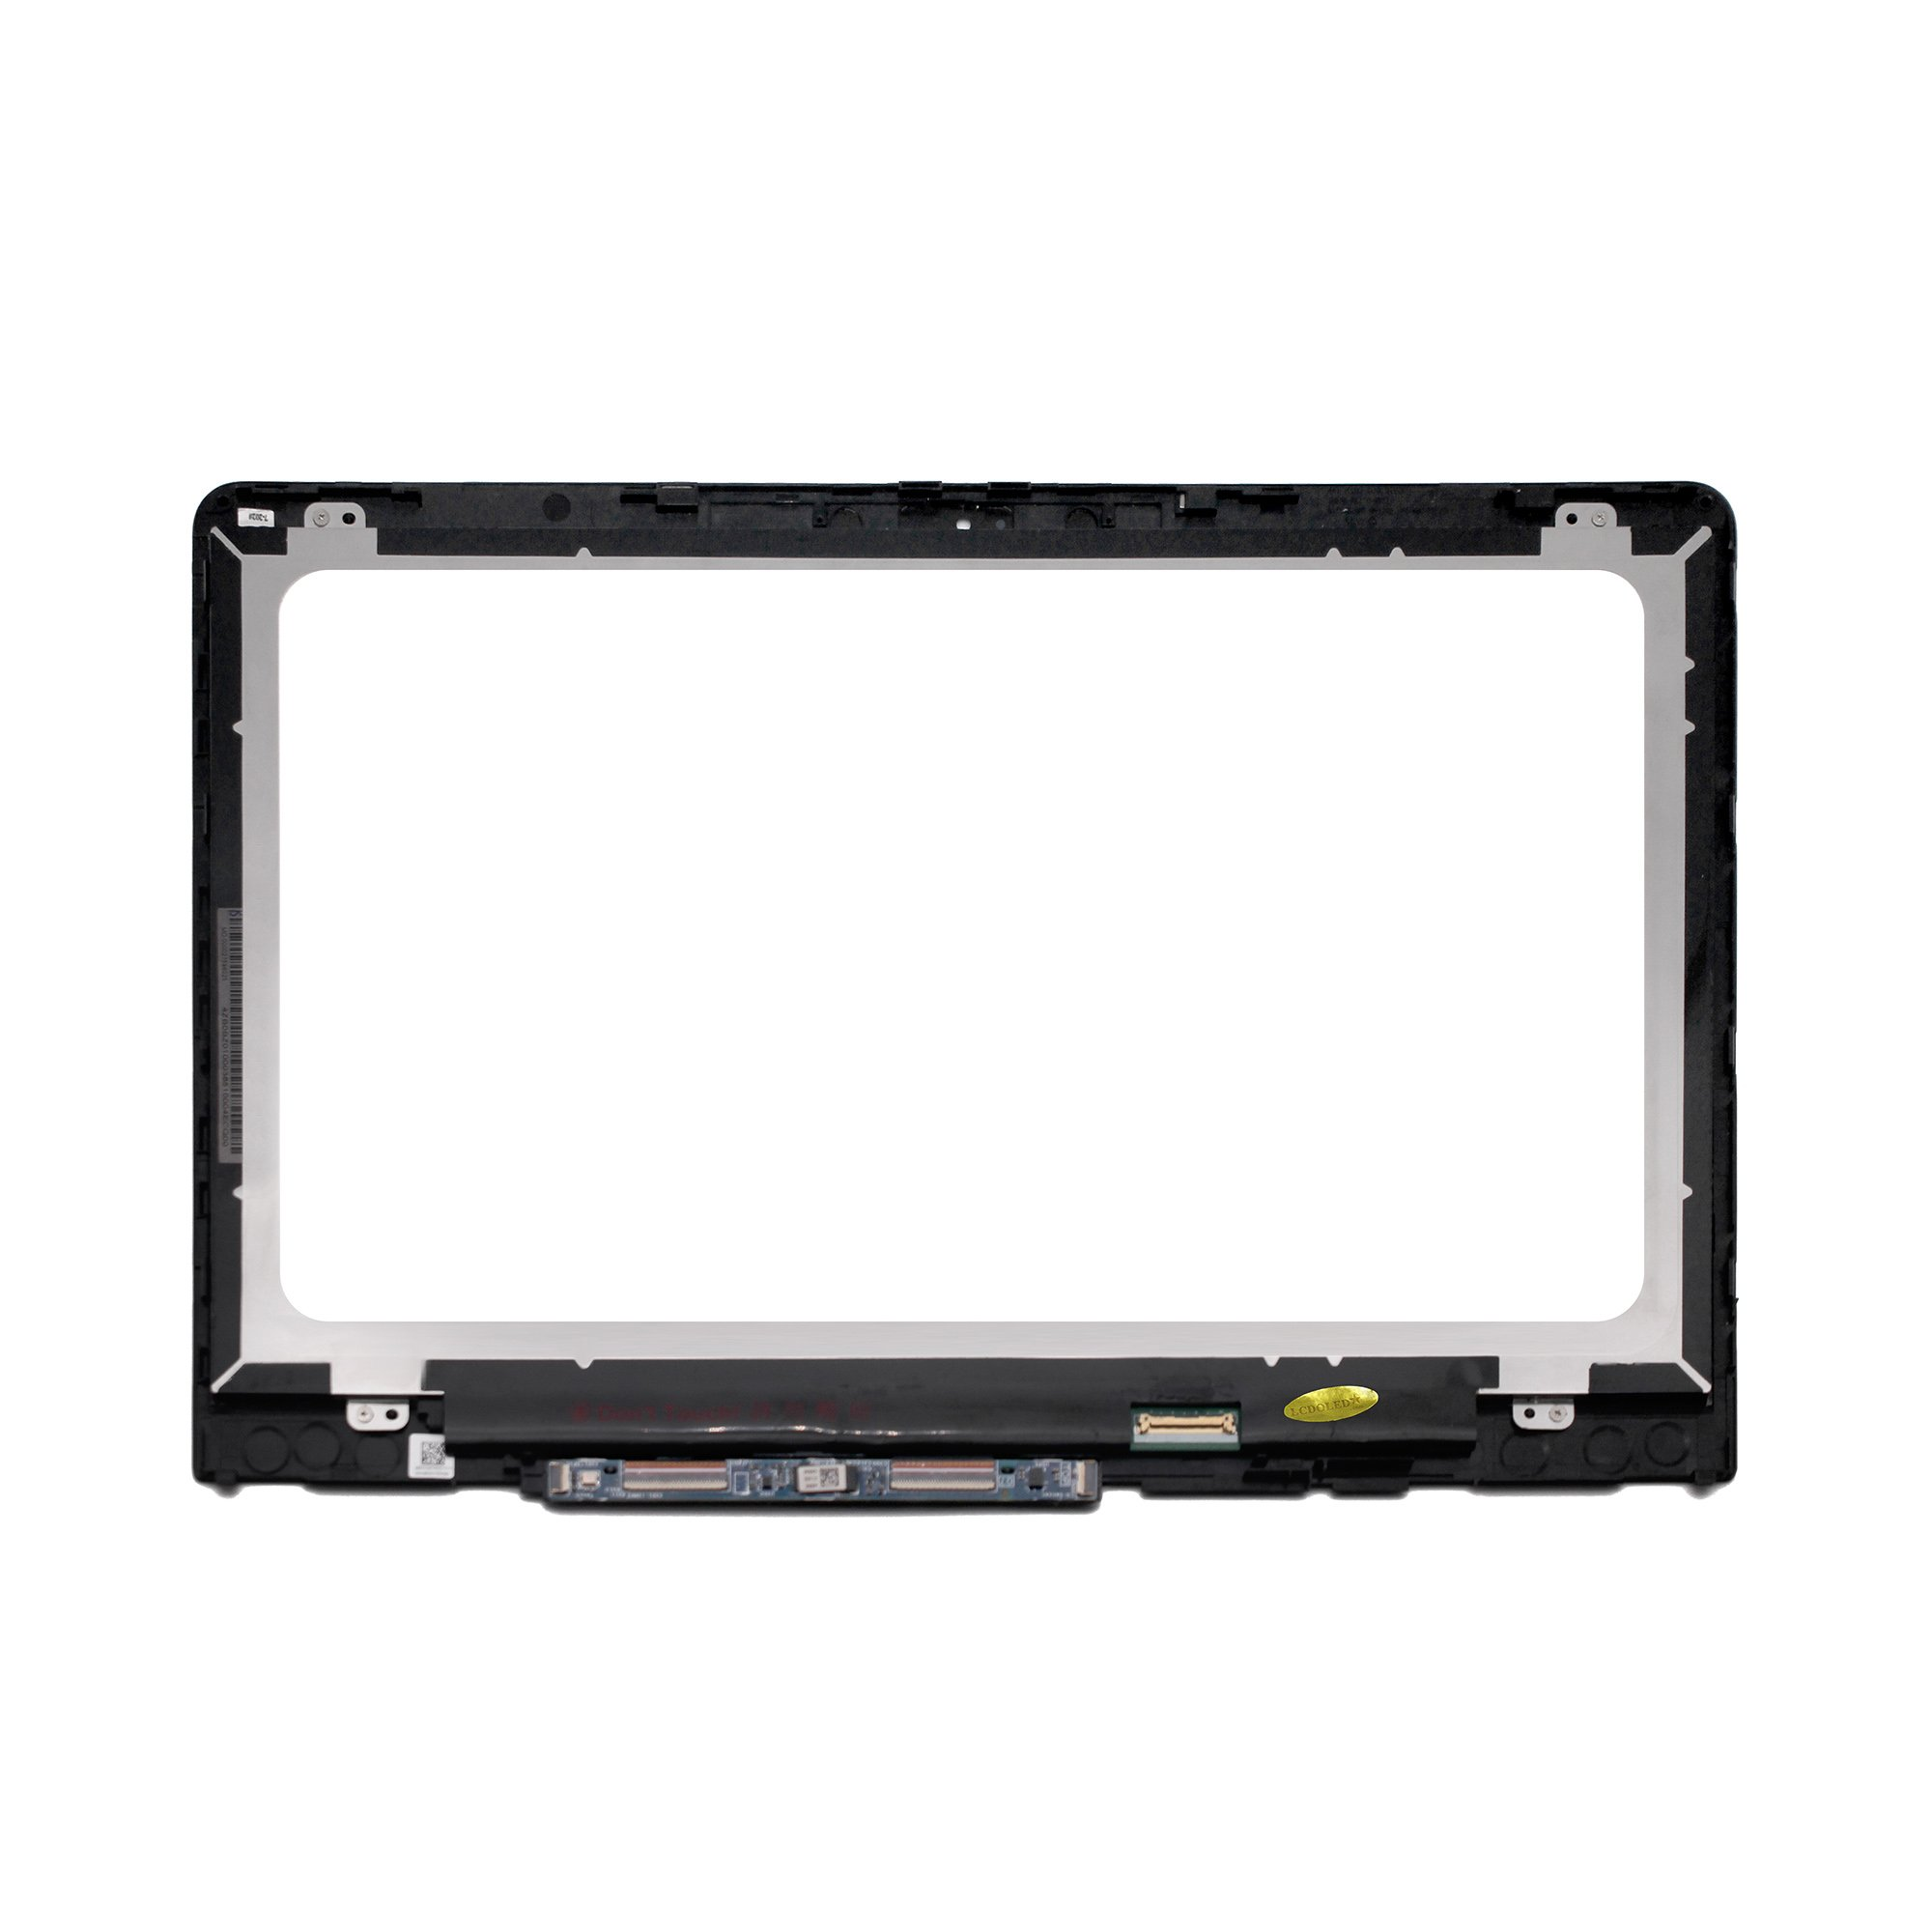 LCDOLED Replacement 14 inches HD 1366x768 LCD Touch Screen Digitizer Assembly Bezel with Board for HP Pavilion x360 14-ba000 14-ba100 14m-ba000 14m-ba100 14m-ba013dx 14m-ba015dx 14-ba110nr 14-ba175nr by LCDOLED (Image #2)